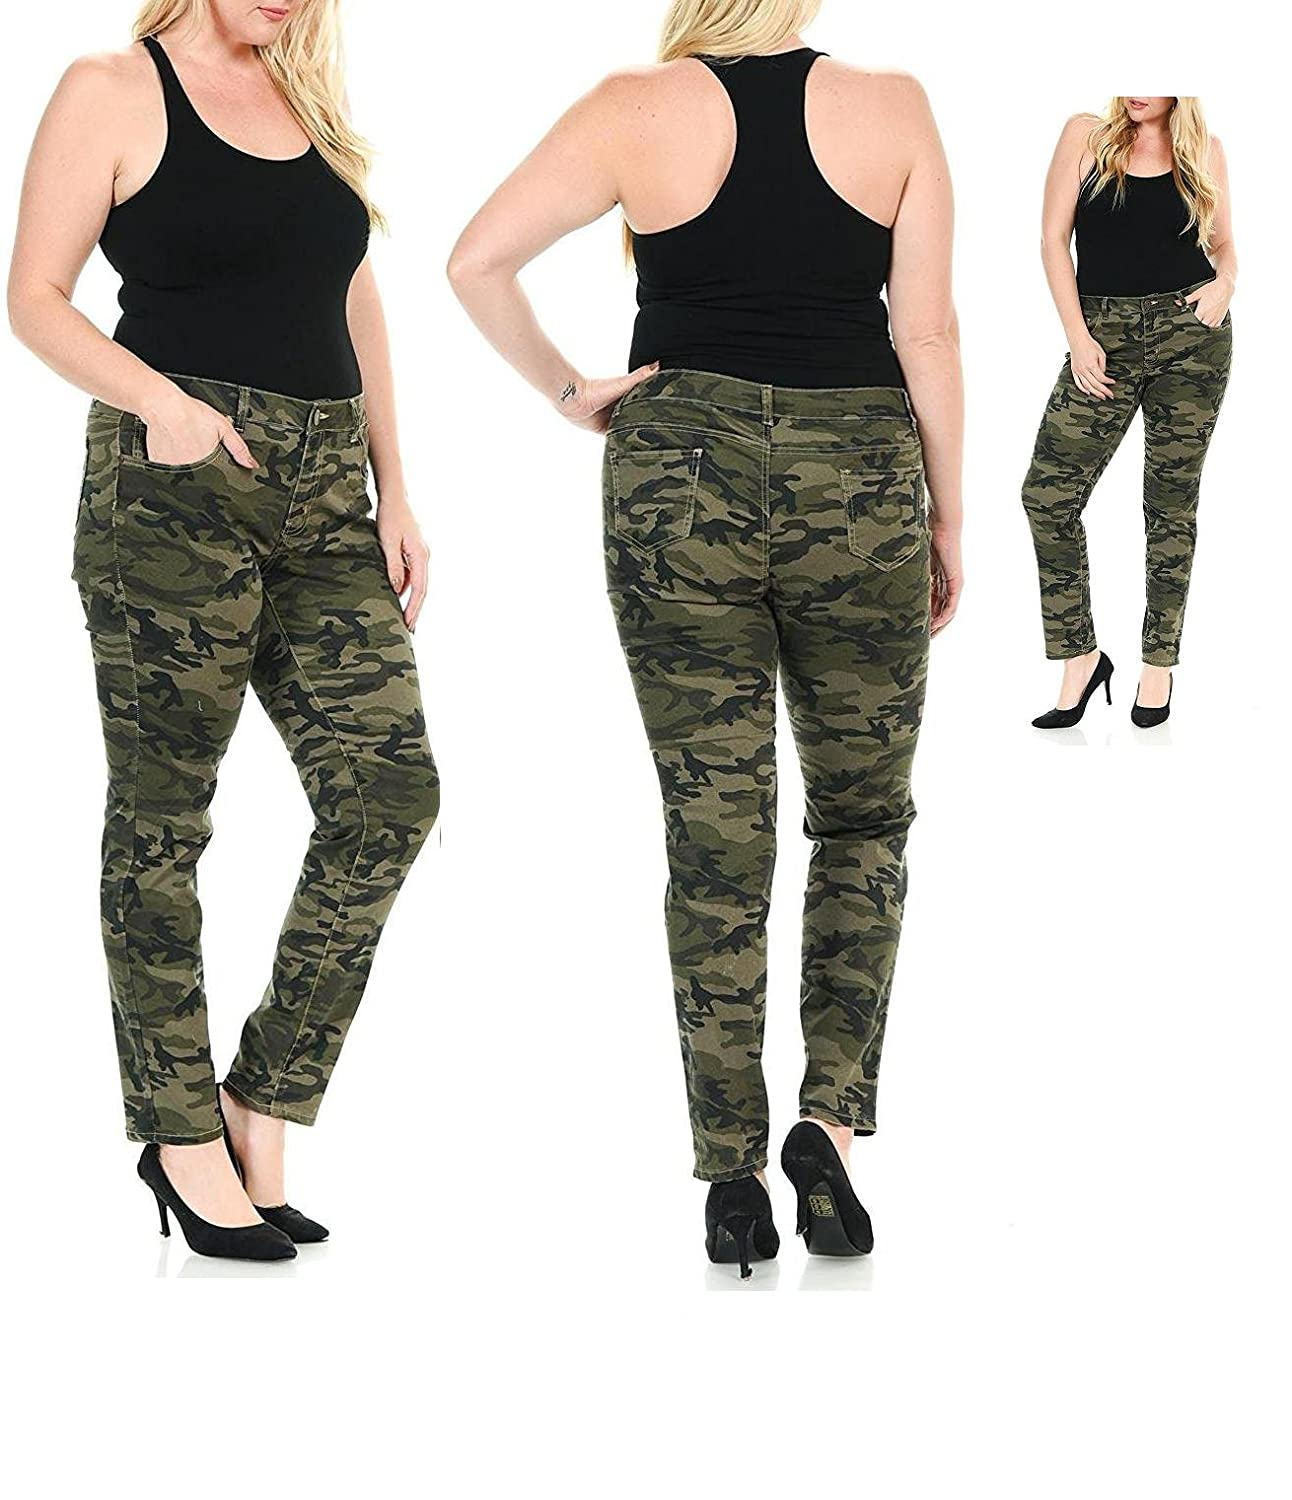 8bd639454460d These PREMIUM Camouflage denim jeans pants are comfortable and amazingly  versatile. PLUS SIZE WOMENS JEANS PANTS SKINNY LEG SIZE-14 16 18 20 22 24  rear ...